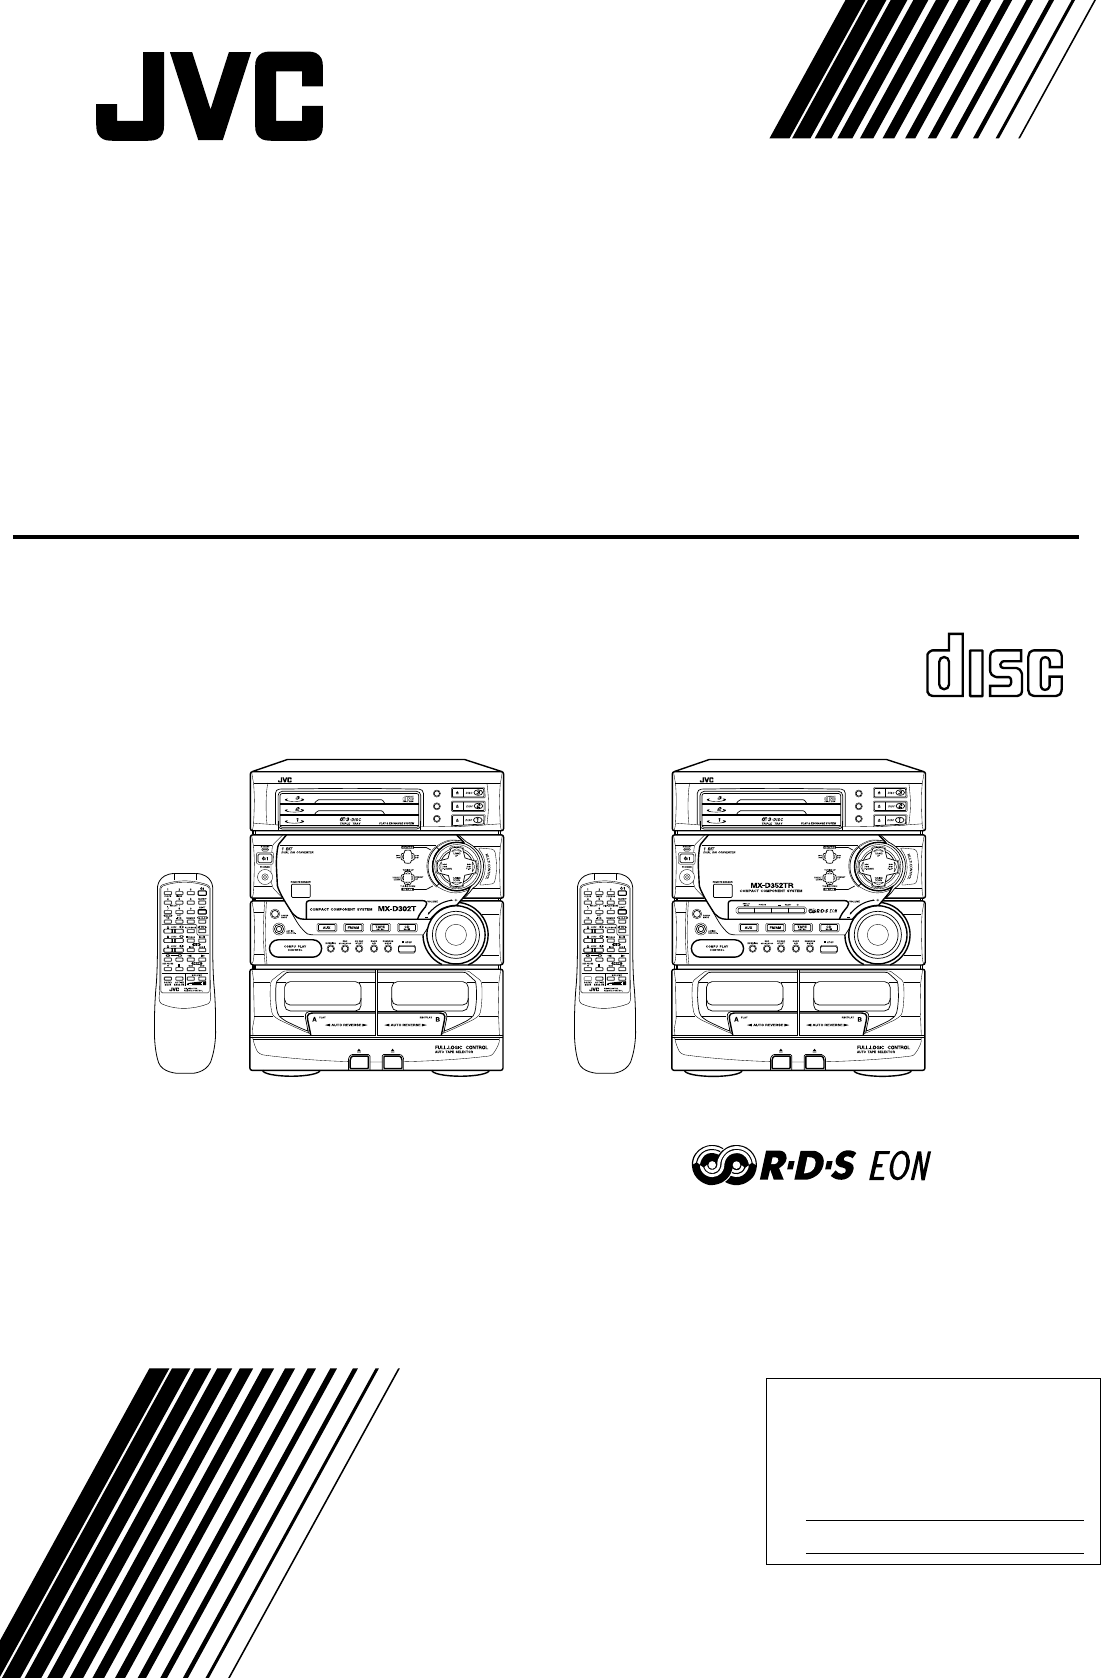 Jvc Stereo System Ca D302t User Guide